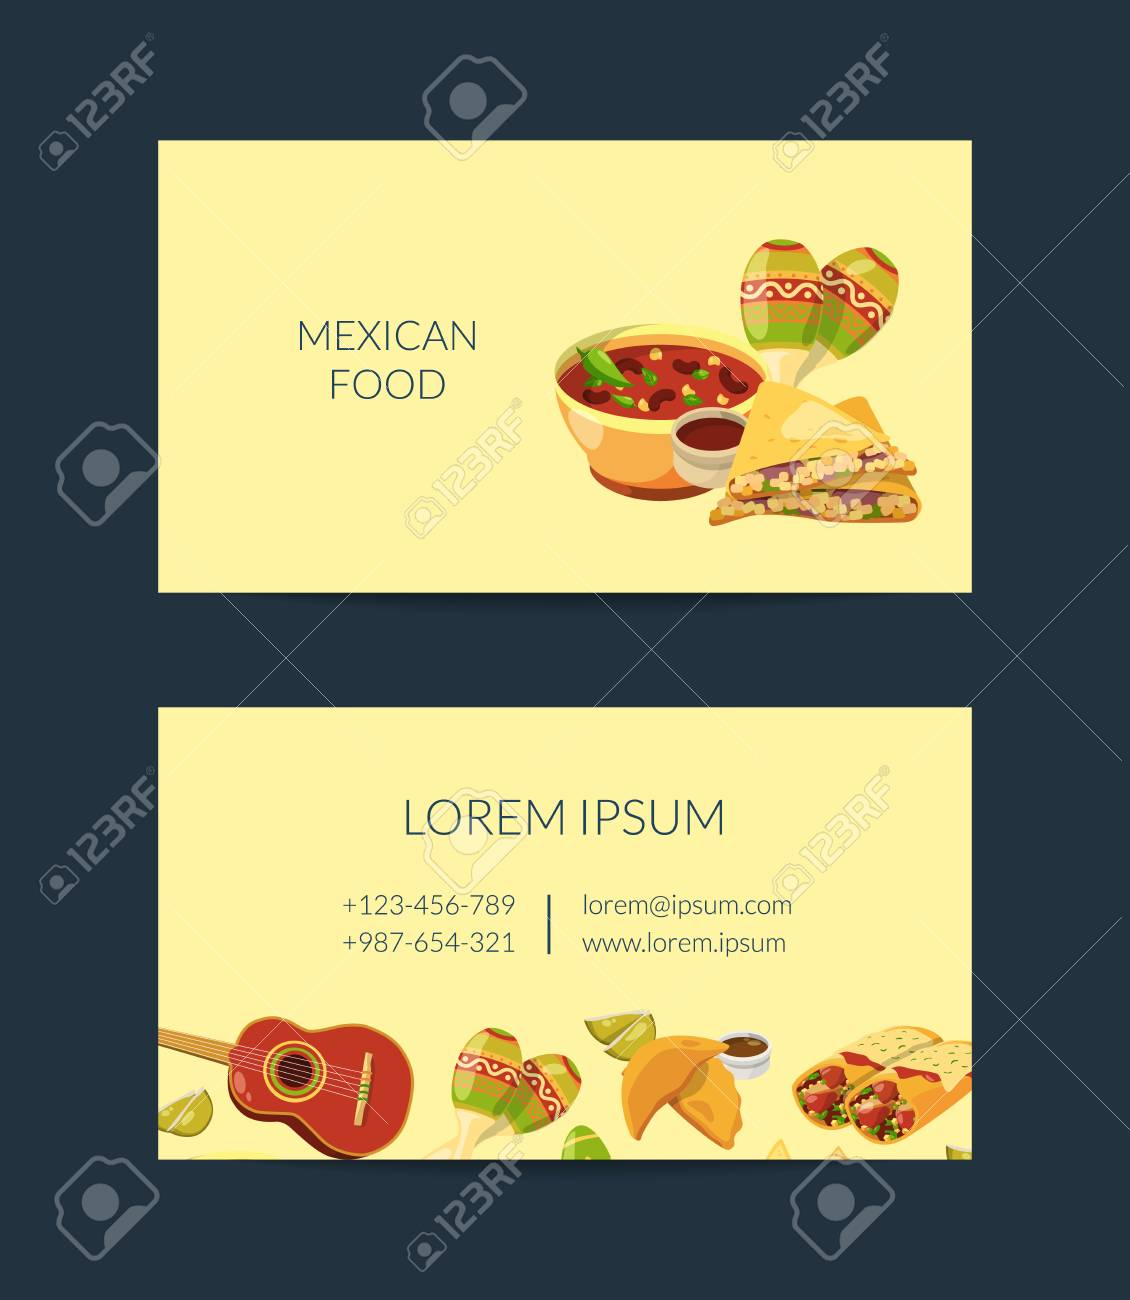 Vector Cartoon Mexican Food Business Card Template For Mexican